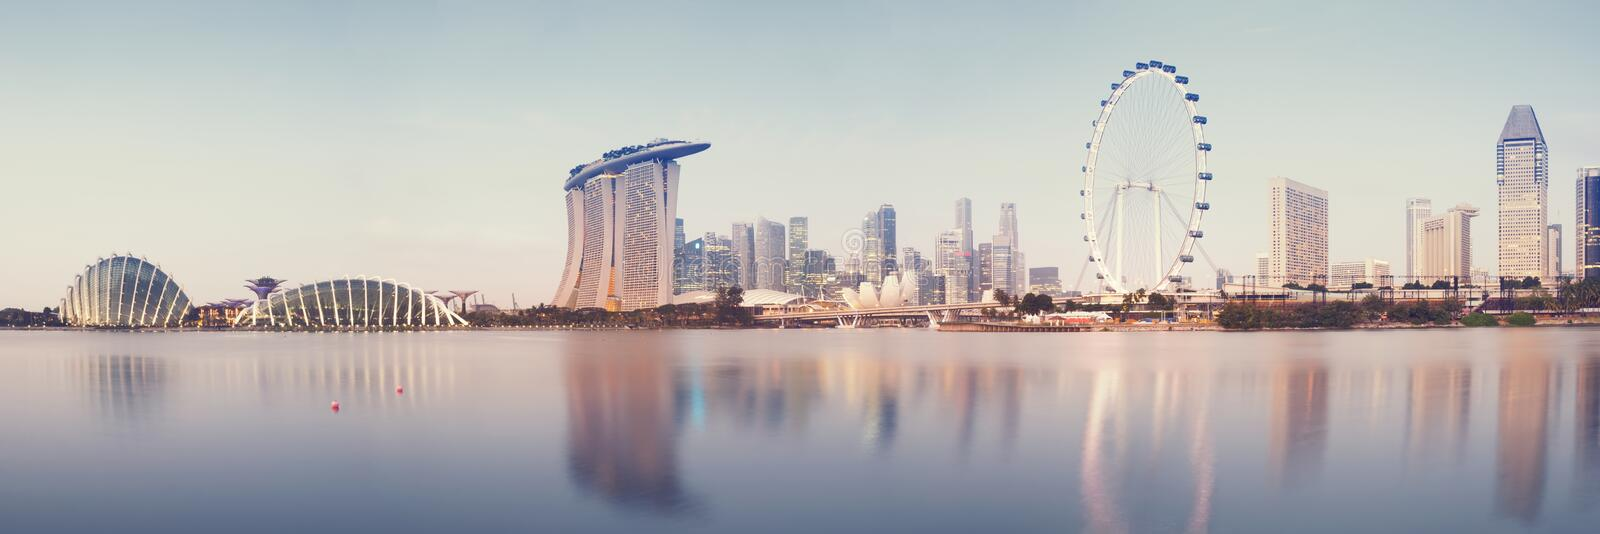 Download Singapore Skyline stock image. Image of business, cloud - 38187019